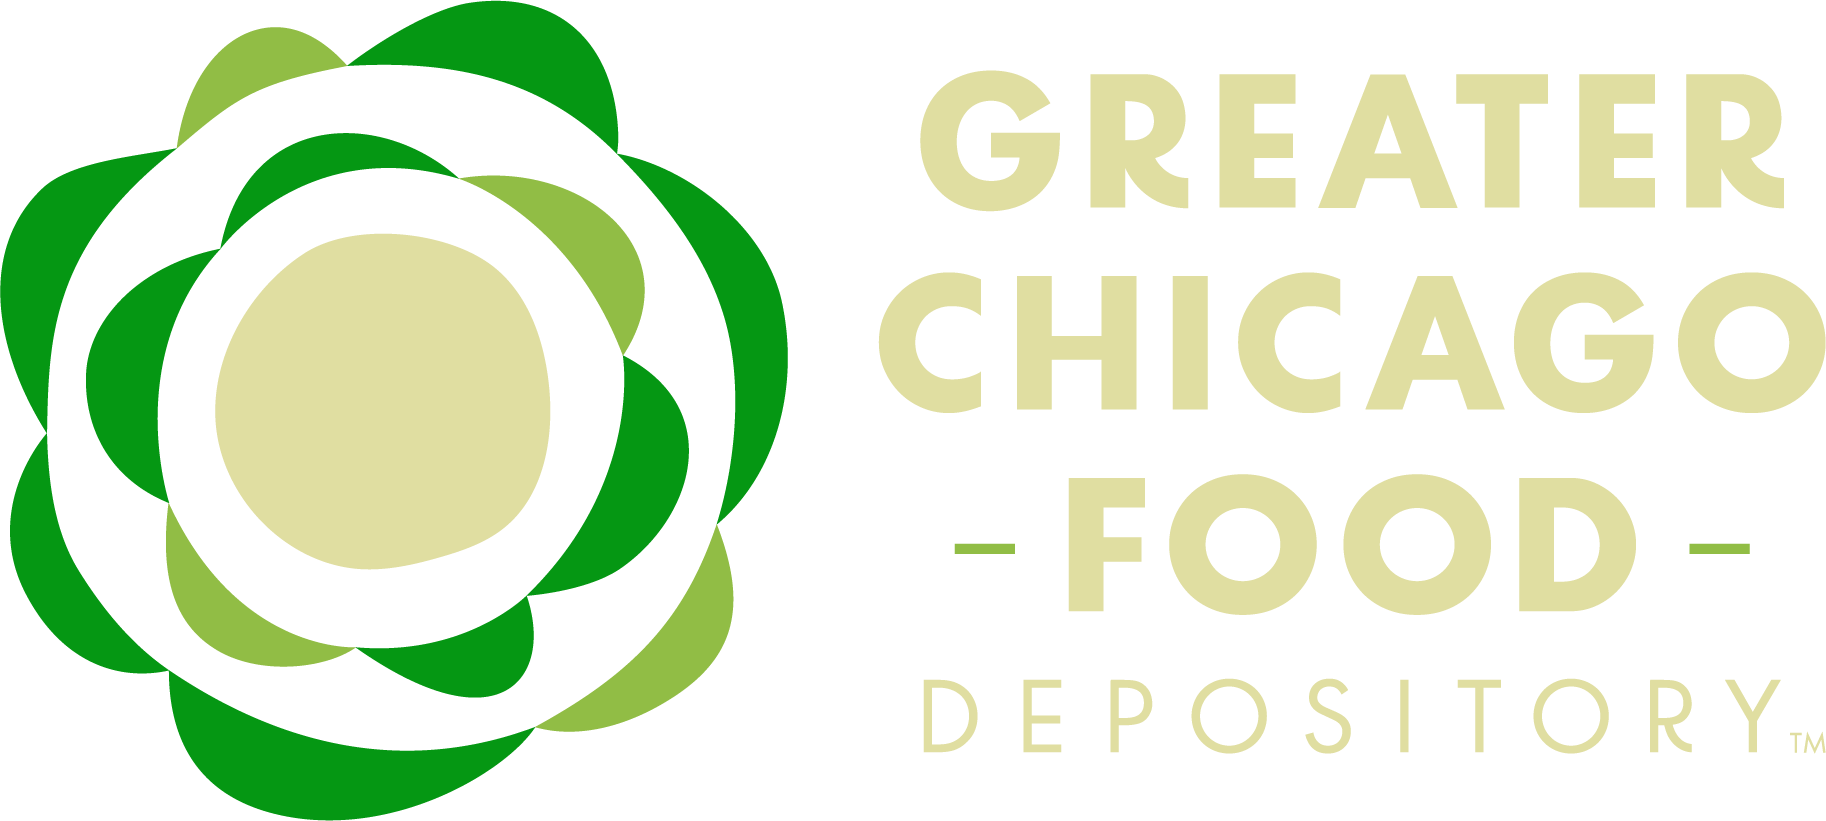 Greater Chicago Food Depository Company Store